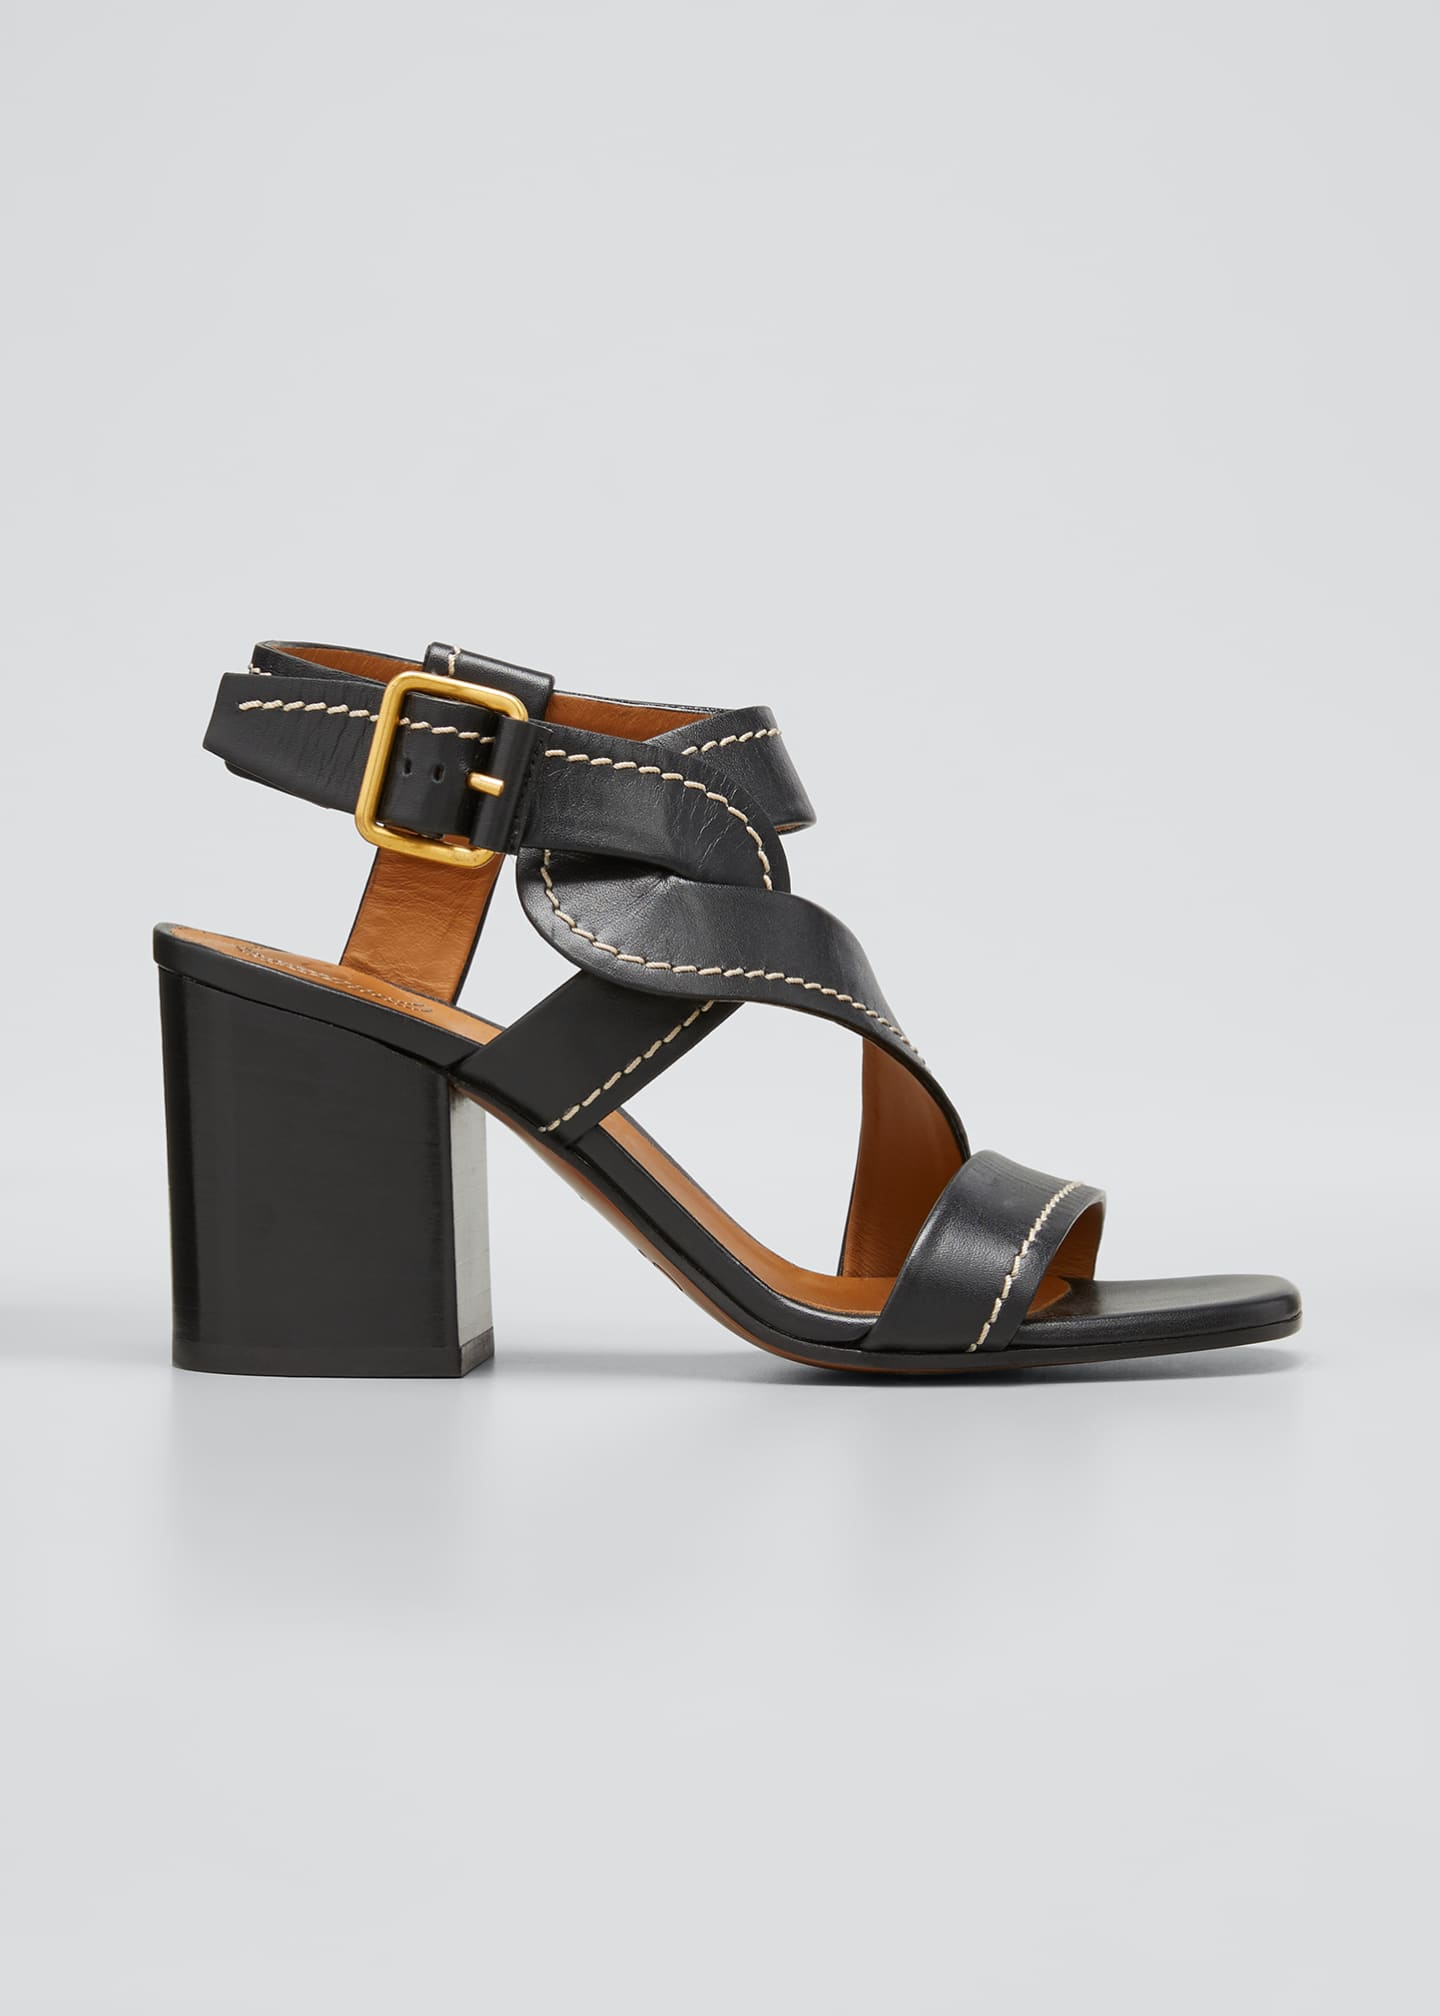 Chloe Candice Twisted Ankle Sandals